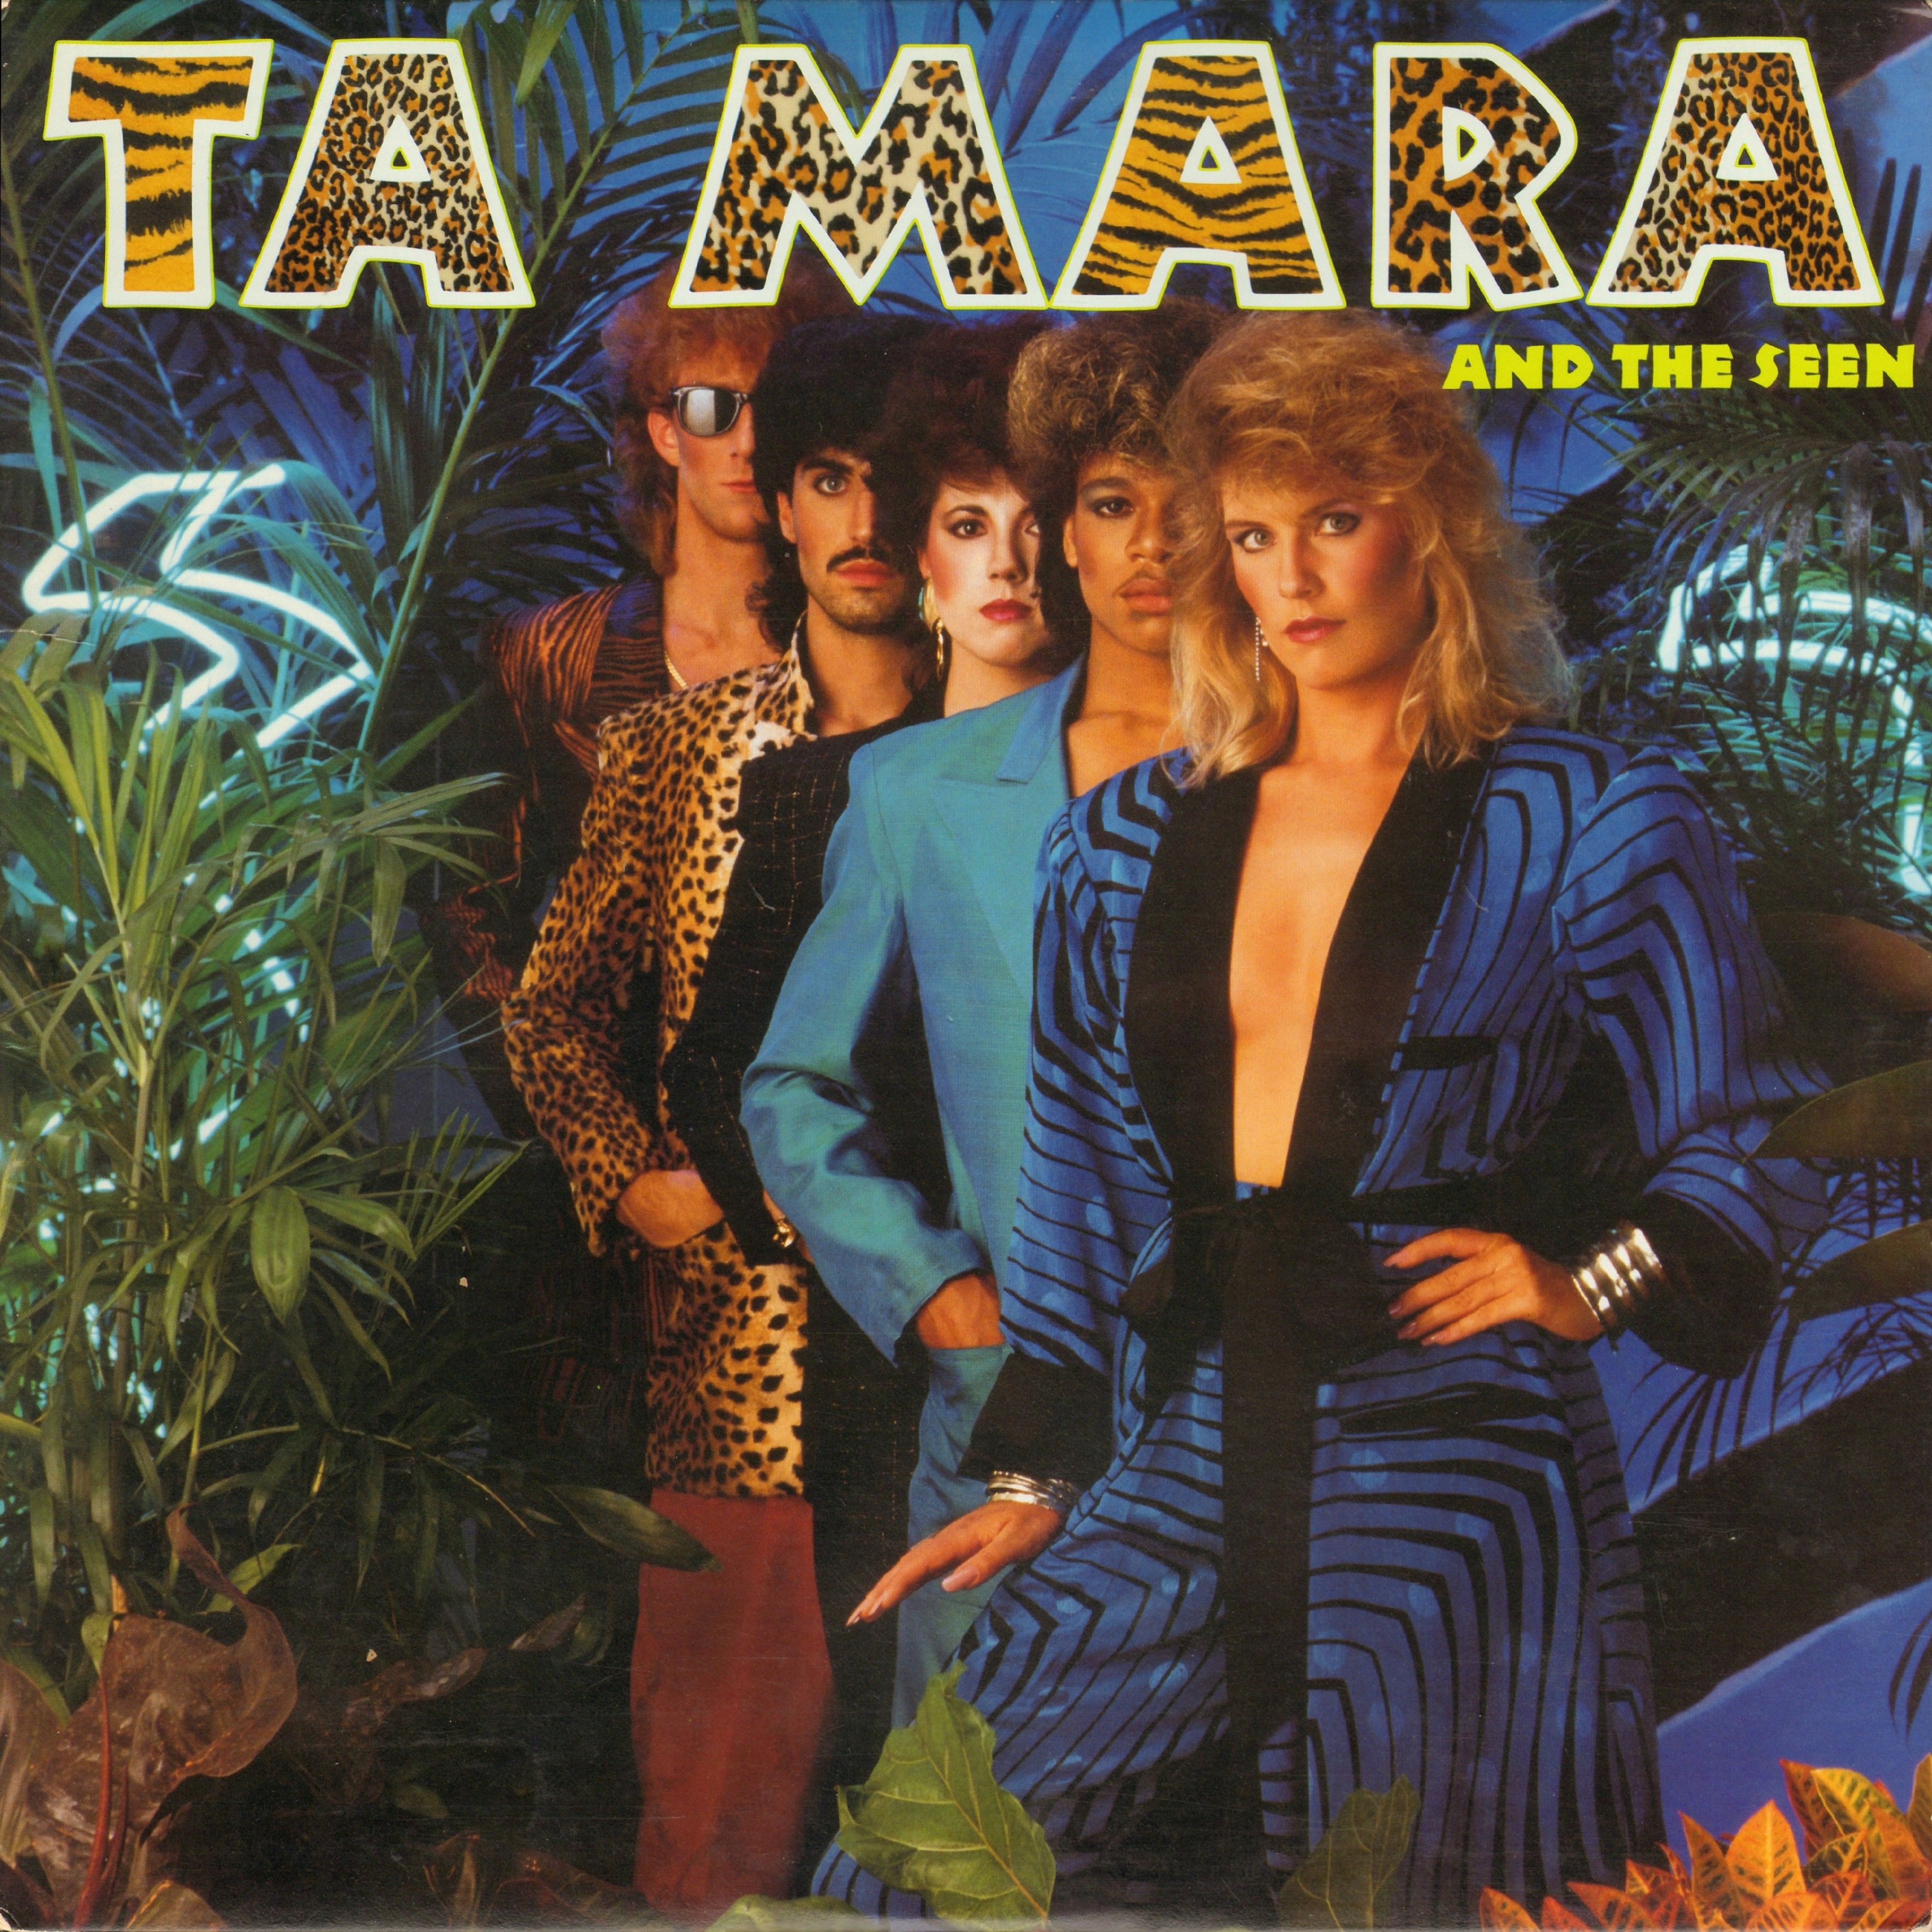 Art for Affecttion by Ta Mara & The Seen